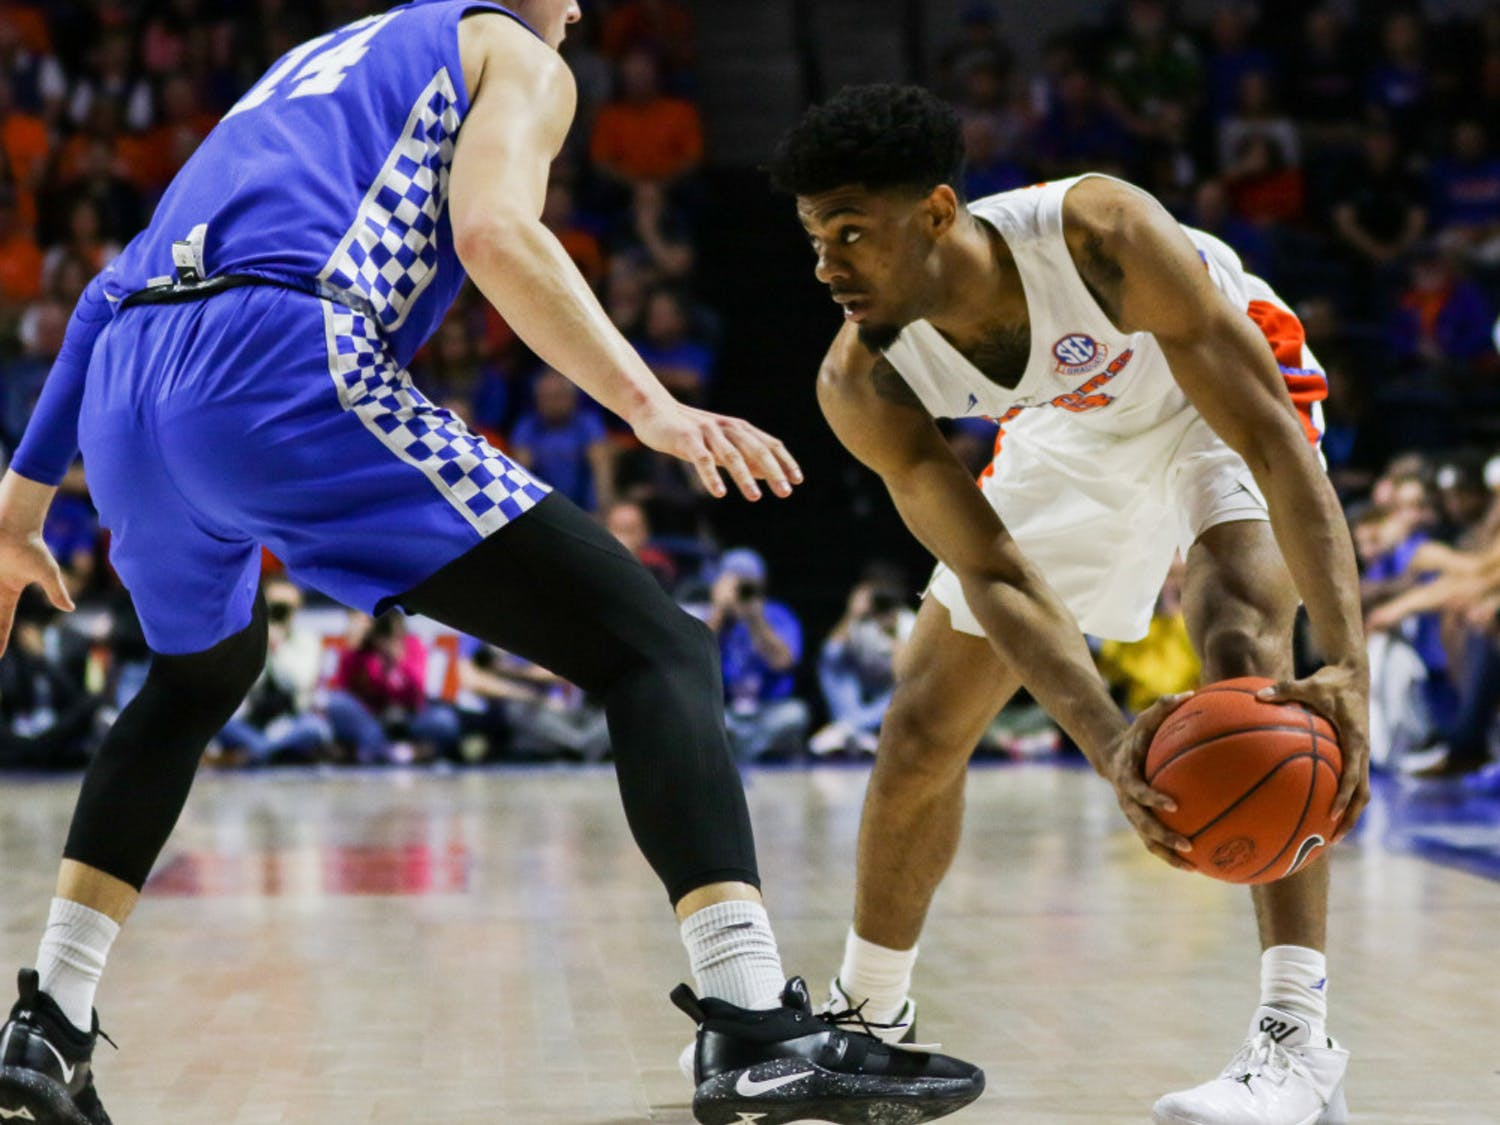 Florida guard Jalen Hudson scored 15 points on 5-of-12 shooting in UF's 73-61 loss to Tennessee on Saturday.